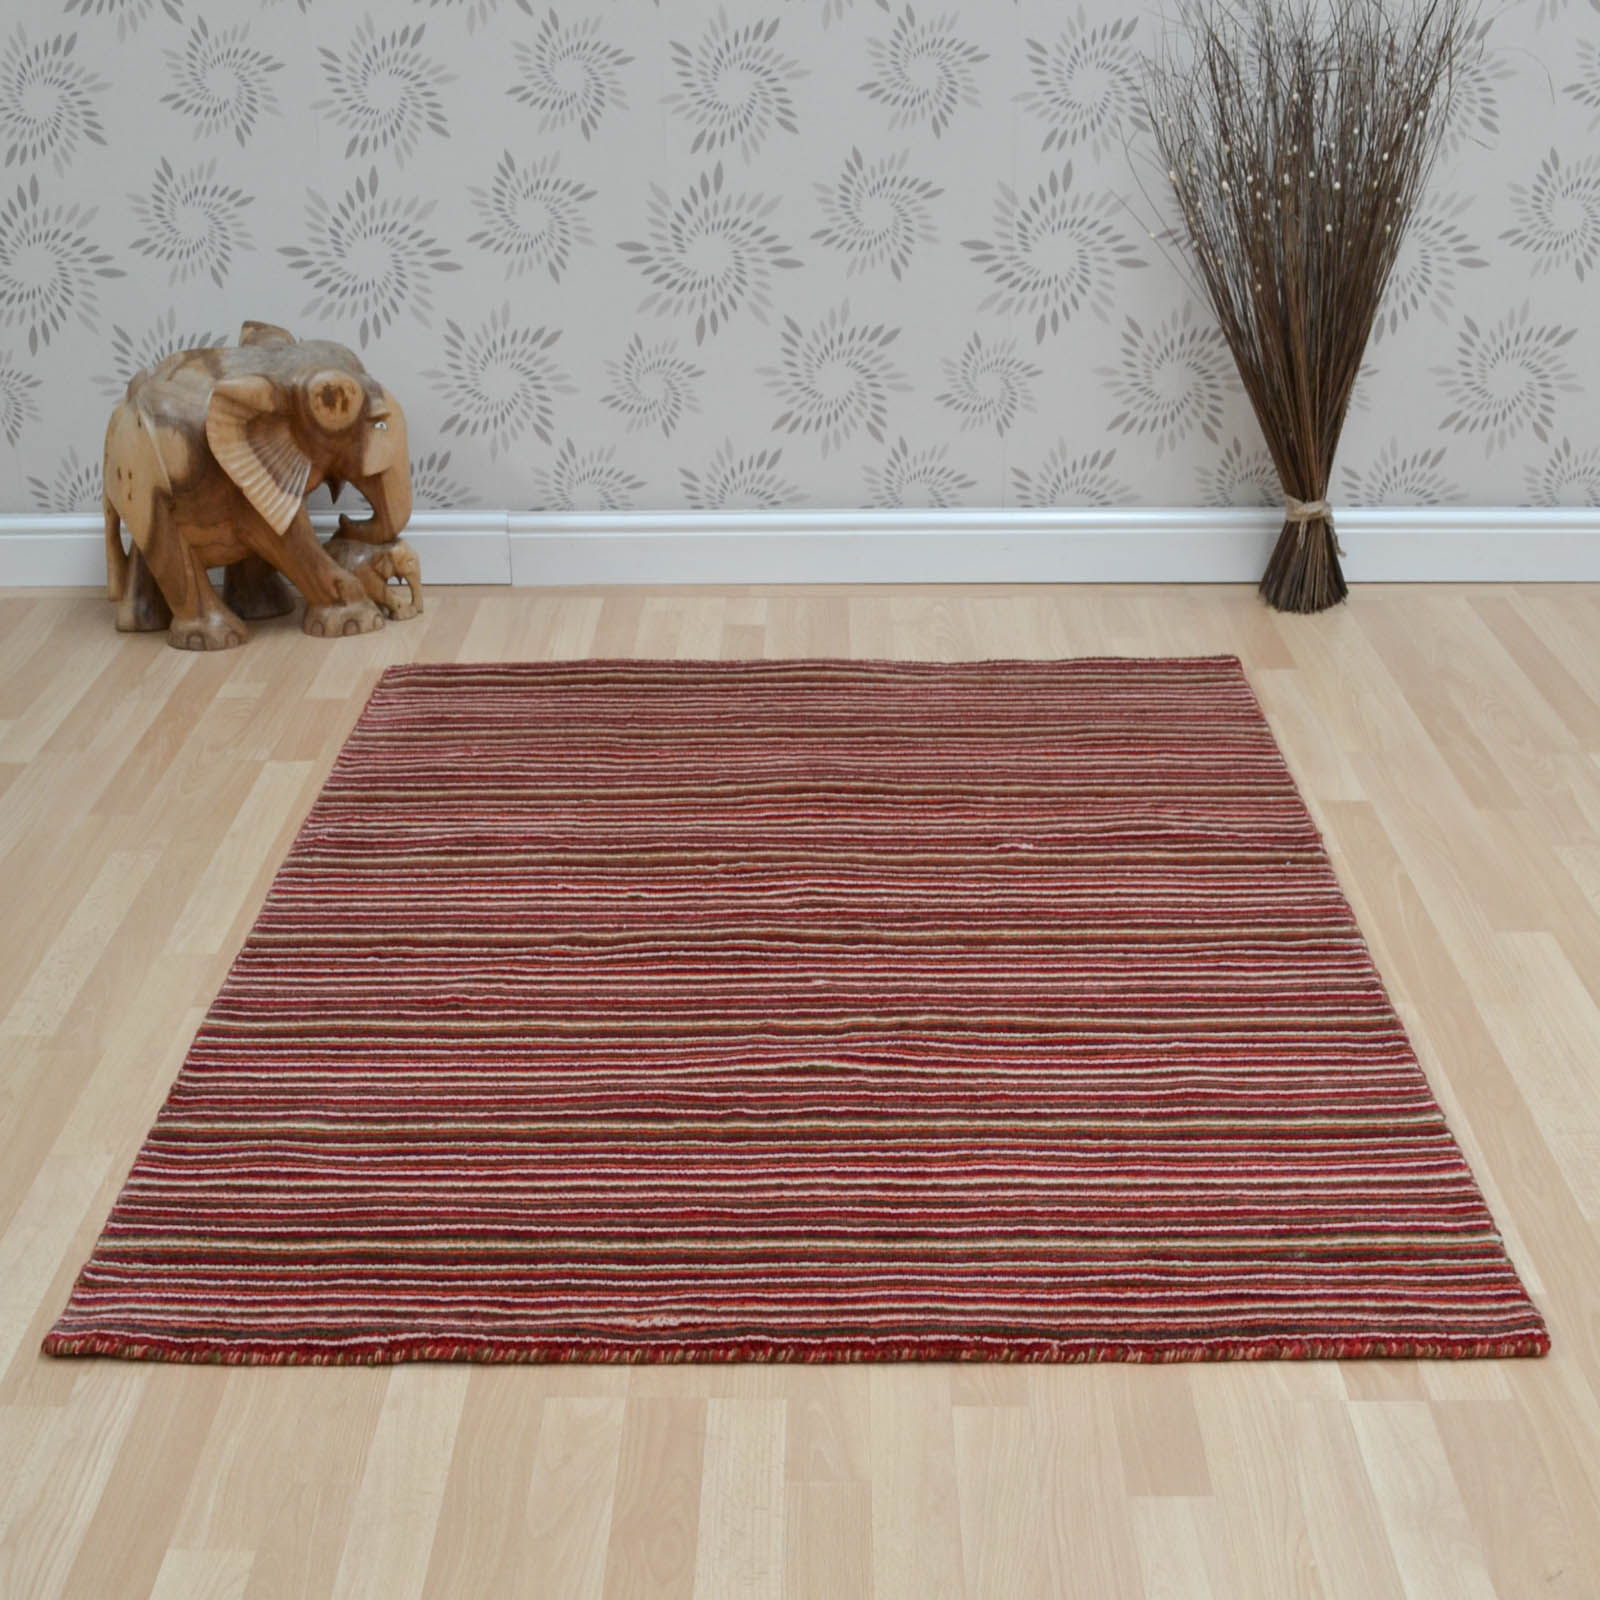 Seasons Loom Knotted Striped Wool Rugs SEA03 in Red